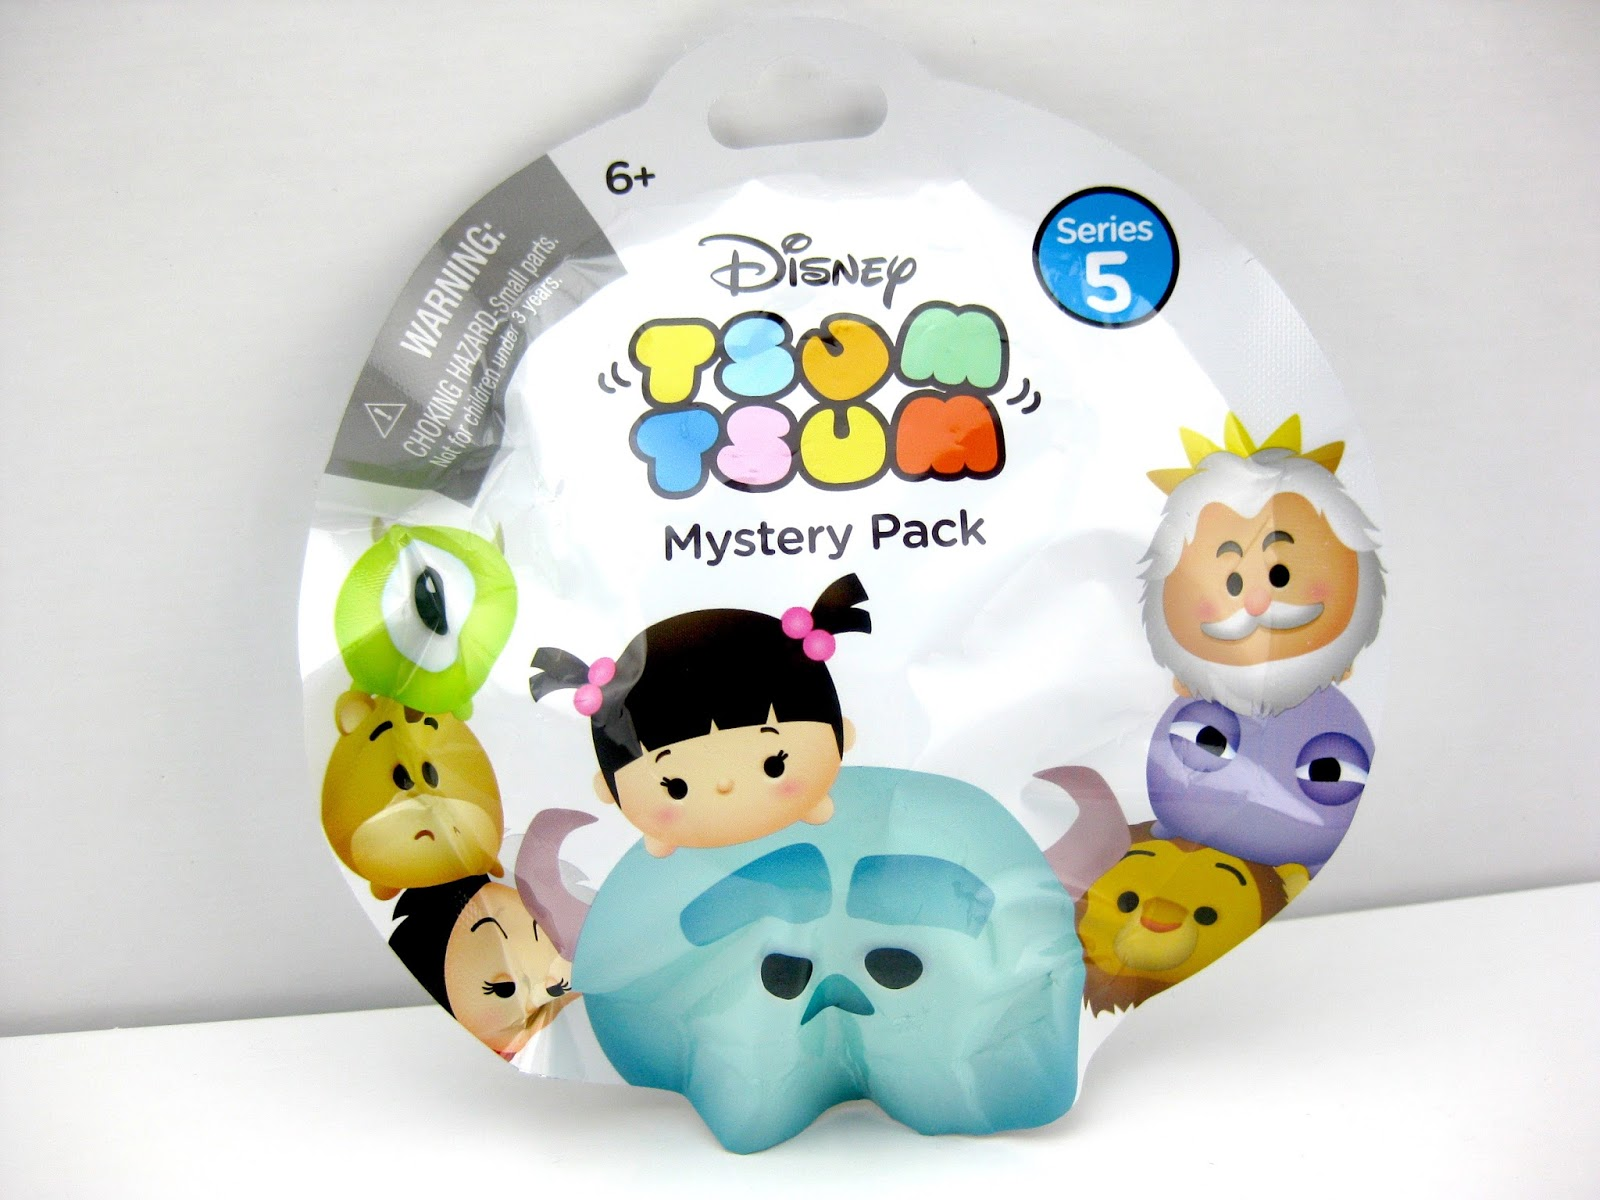 Disney Tsum Tsum Mystery Stack Packs by Jakks Pacific Series 5